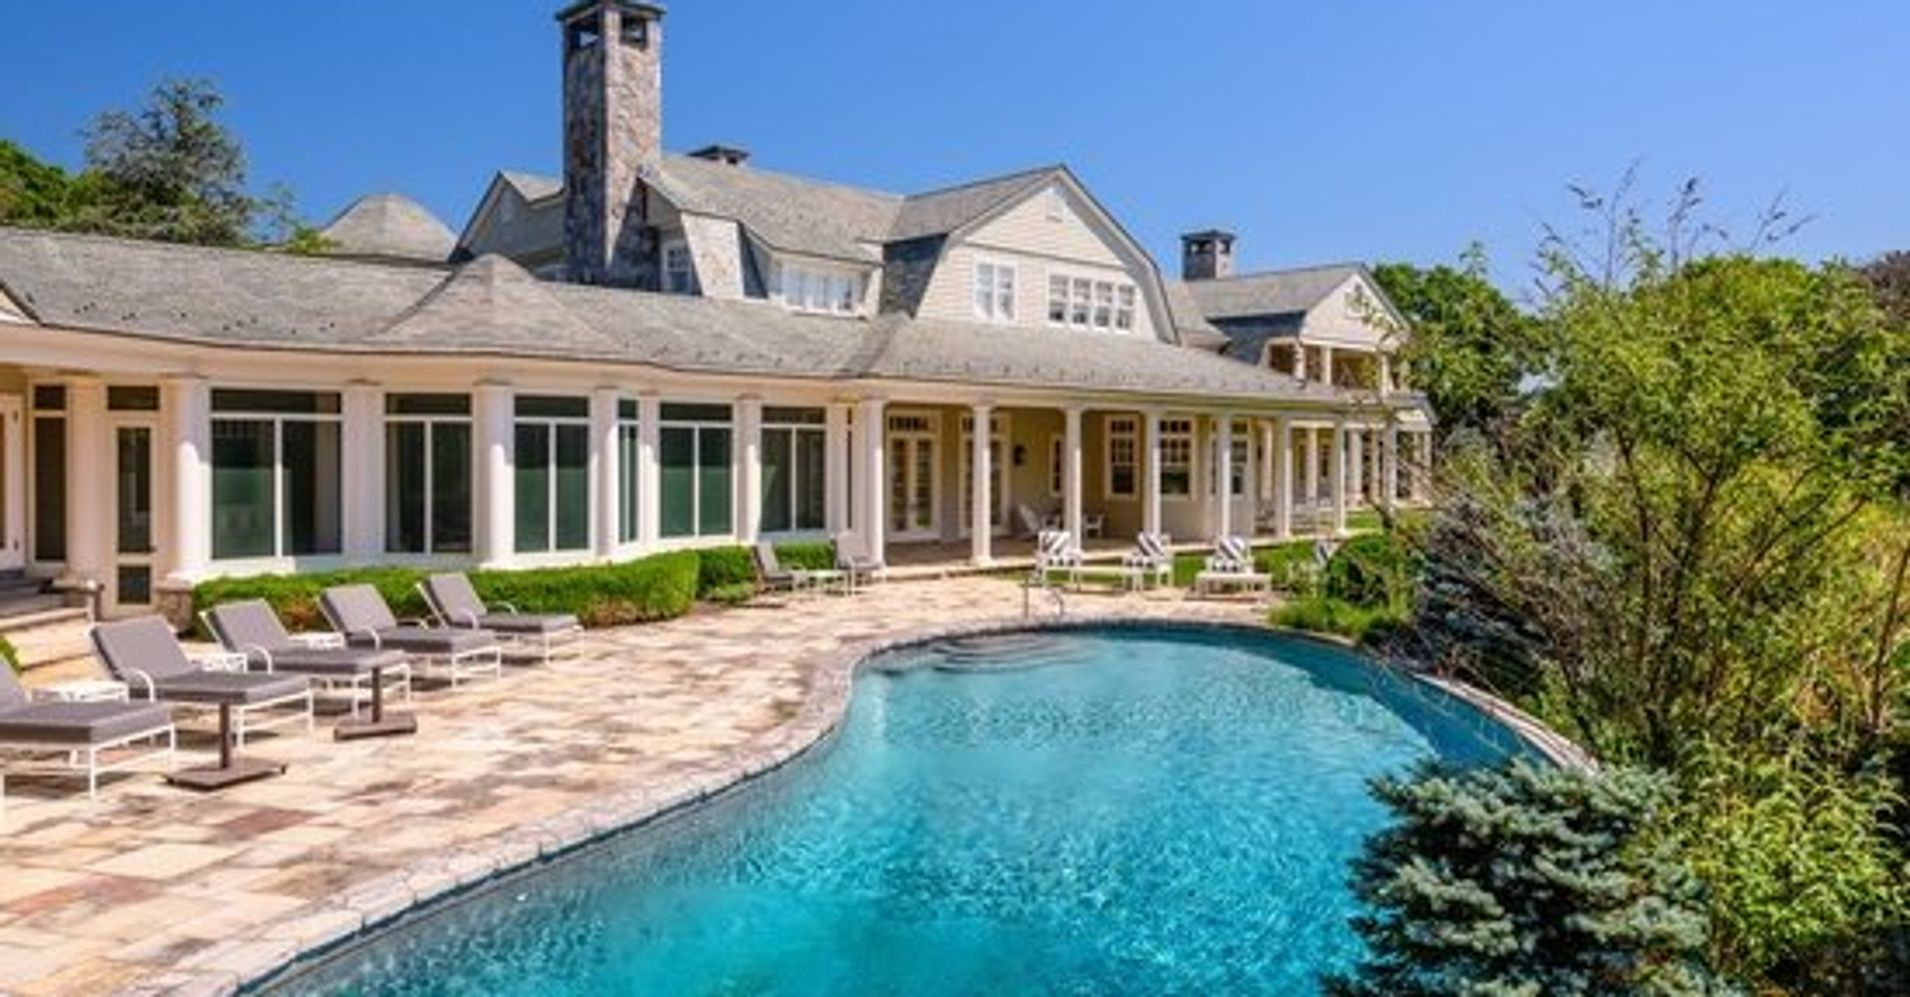 4 Of The Most Expensive Homes Listed On Zillow Right Now Huffpost Life